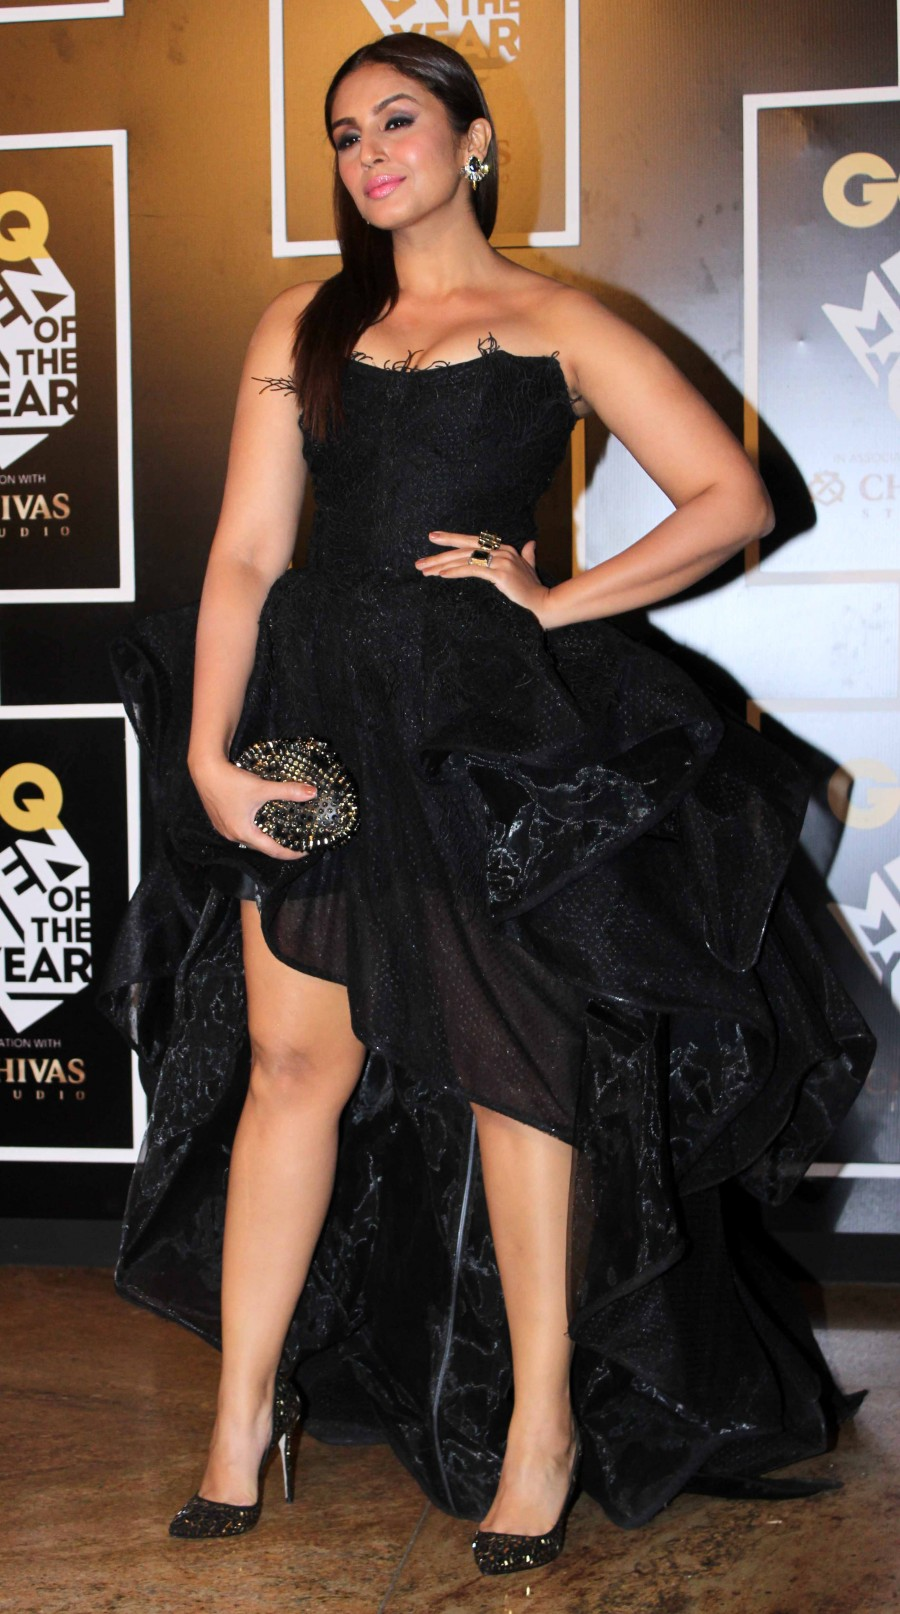 Kangana Ranaut,Huma Qureshi,Kiran Rao,Mandira Bedi,Pooja Hegde,GQ Men of the Year Awards,GQ Men of the Year Awards 2016,Kangana Ranaut at GQ Men of the Year Awards,Huma Qureshi at GQ Men of the Year Awards,Kiran Rao at GQ Men of the Year Awards,Mandira Be